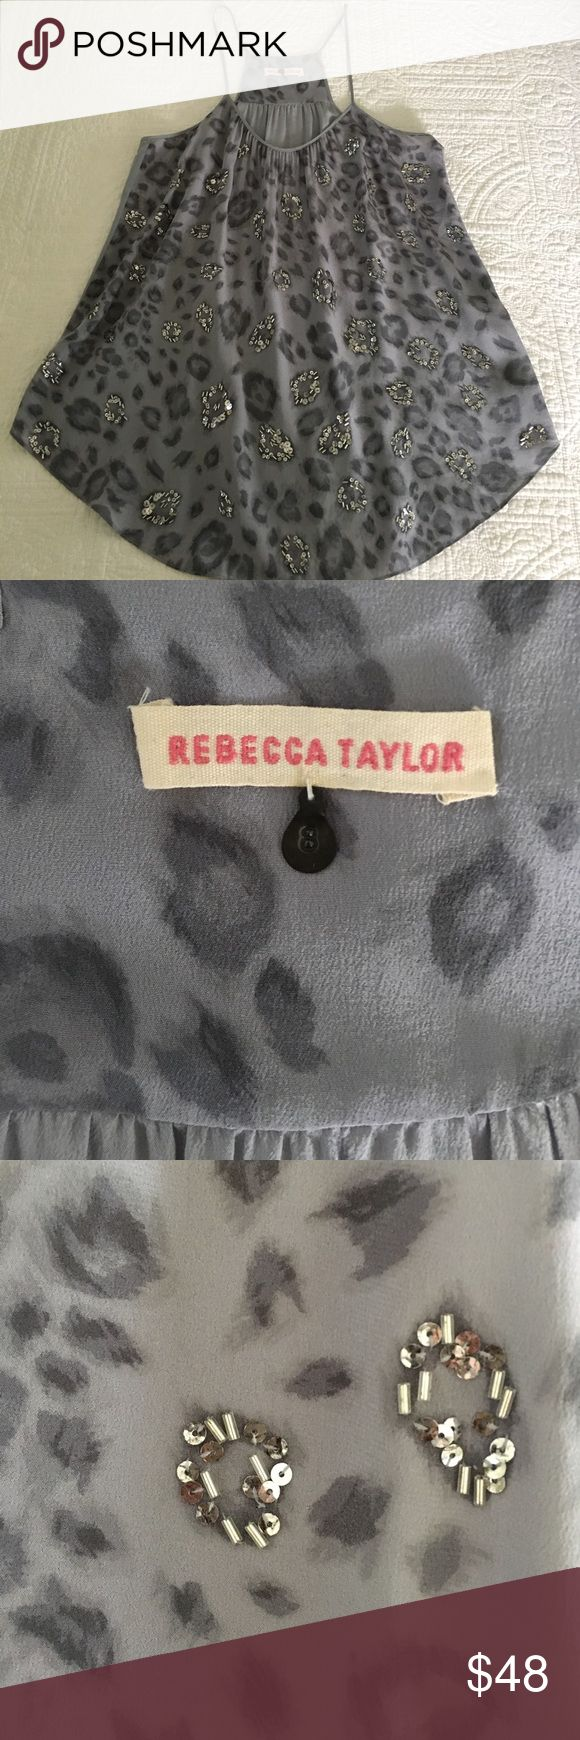 Rebecca Taylor animal print sequined top! Trendy and cute top- perfect for a night out! The lavender color is perfect for all seasons. Can be dressed up with a blazer and jeans, or with a shimmery shirt or skirt. Sequins on the cheetah print dress this top up. Such a fun piece! Rebecca Taylor Tops